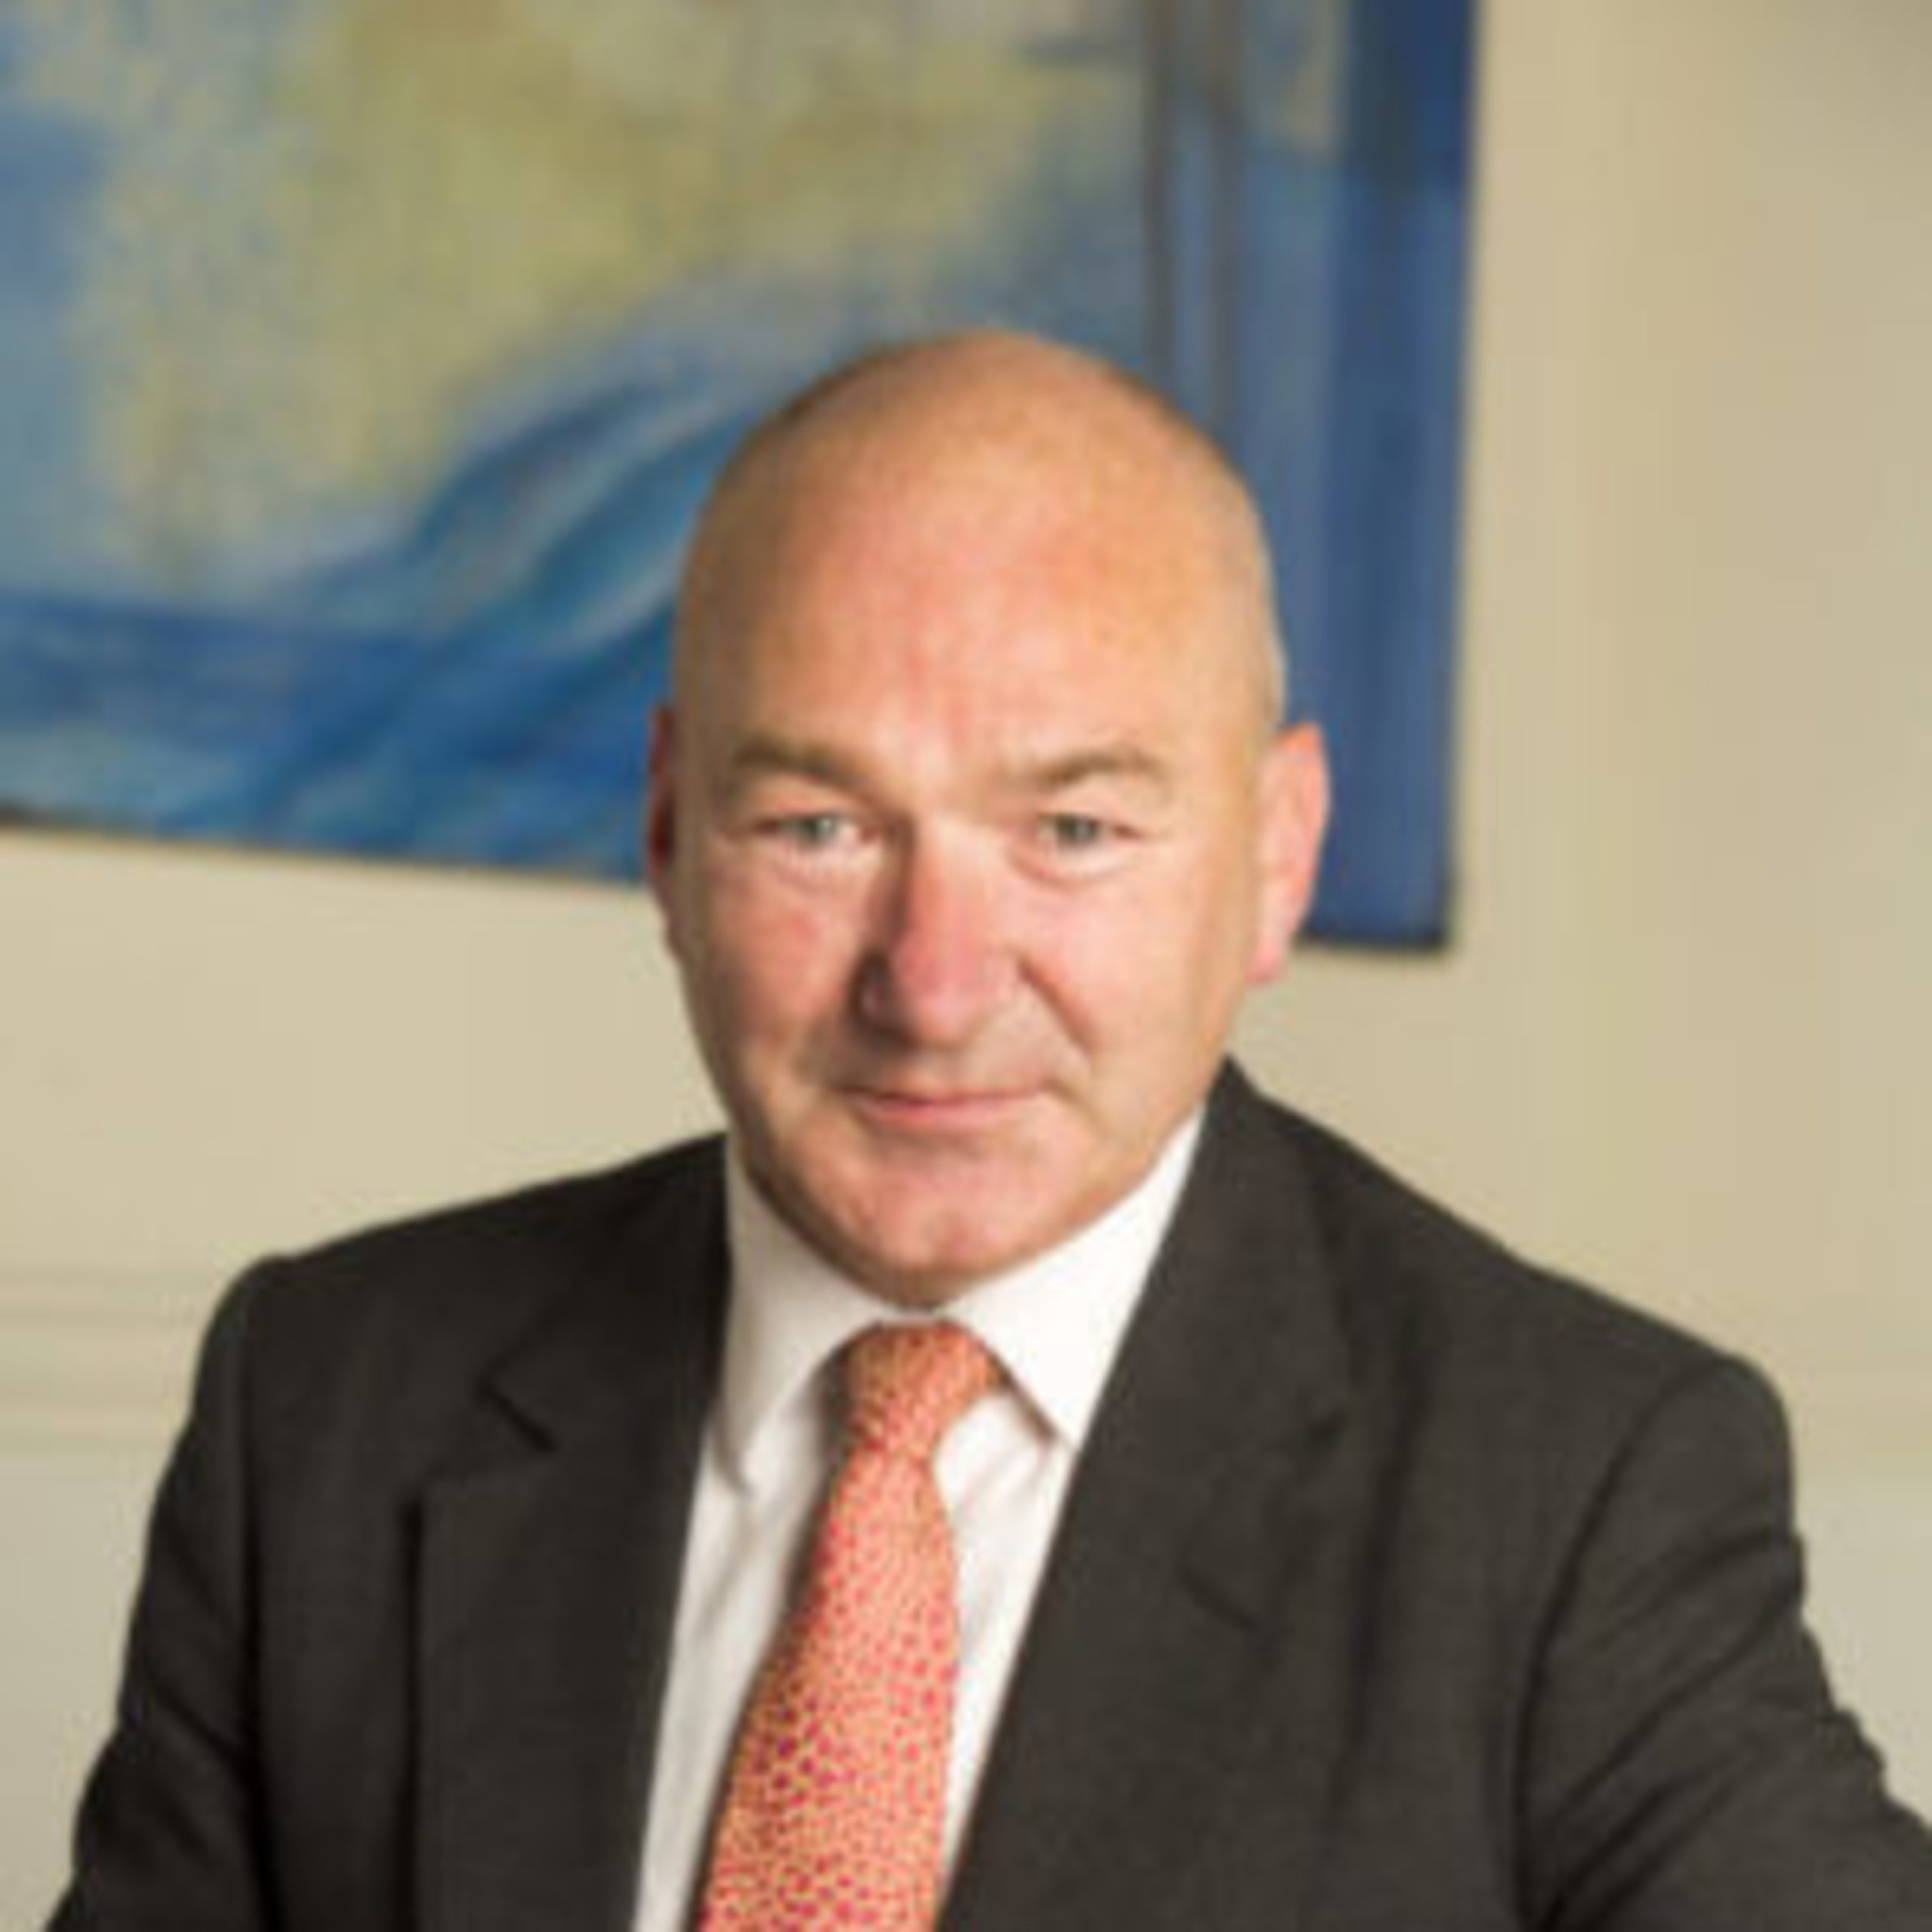 ETOA CEO Tom Jenkins is now a tourism hero: I am losing my hair